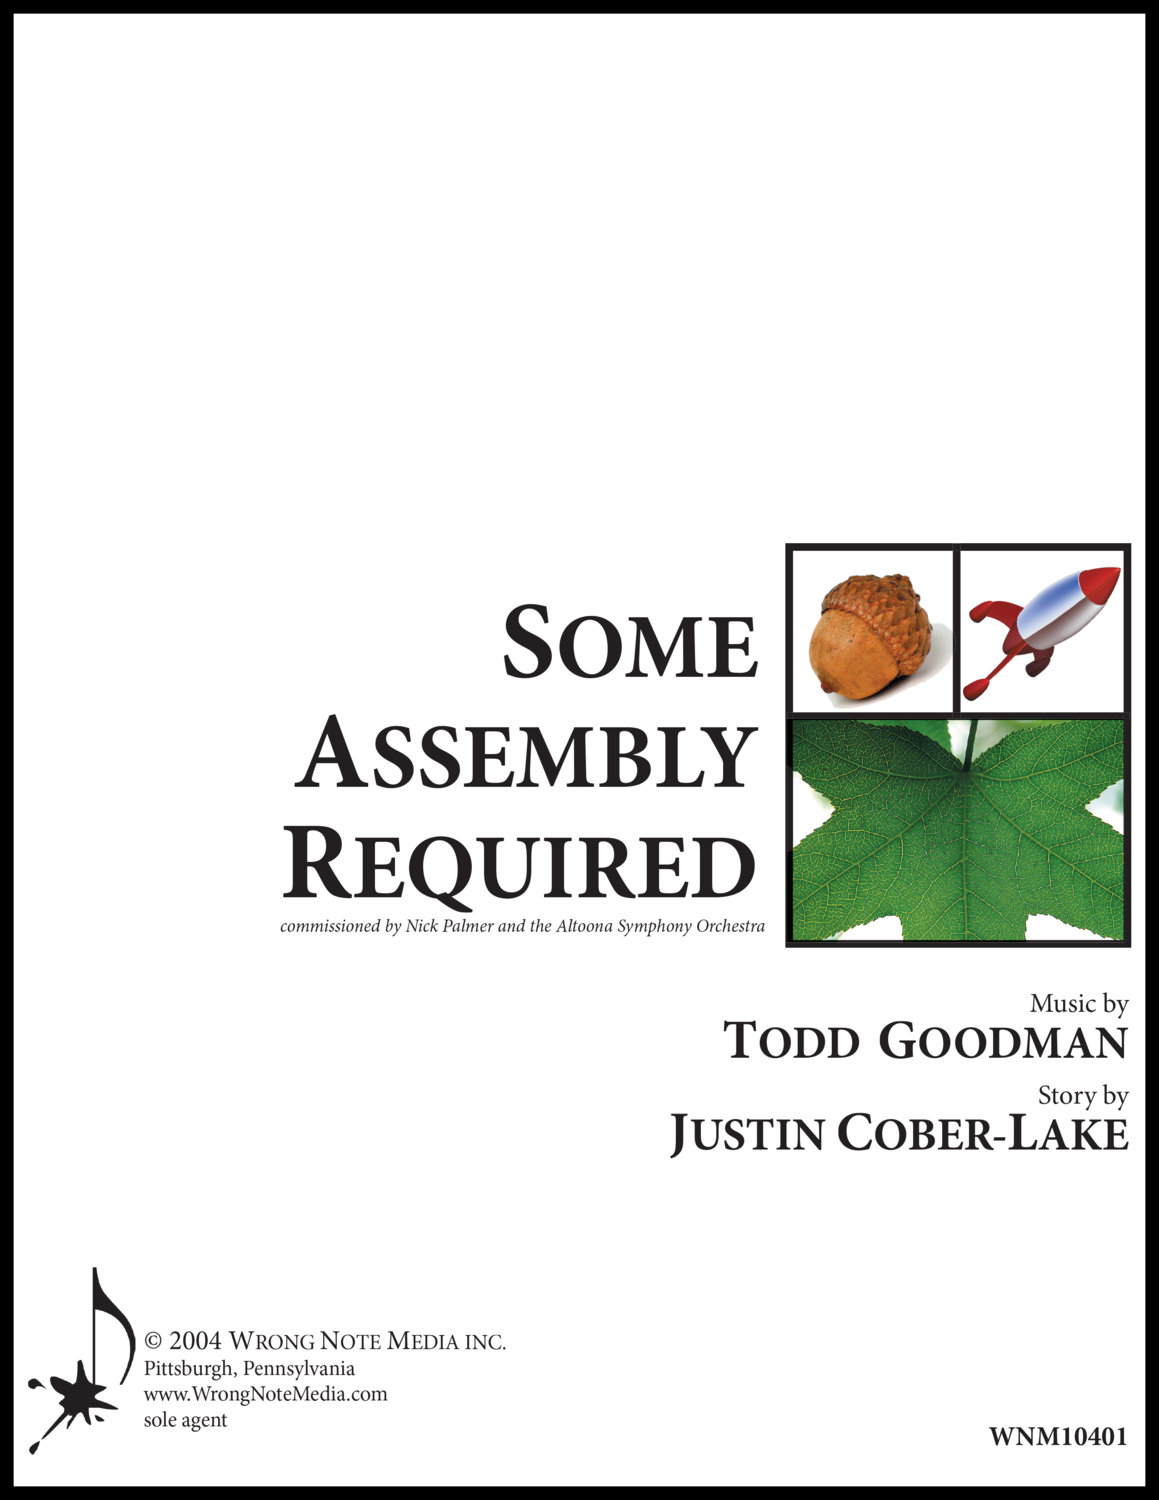 Some Assembly Required - orchestra SCORE, by Todd Goodman